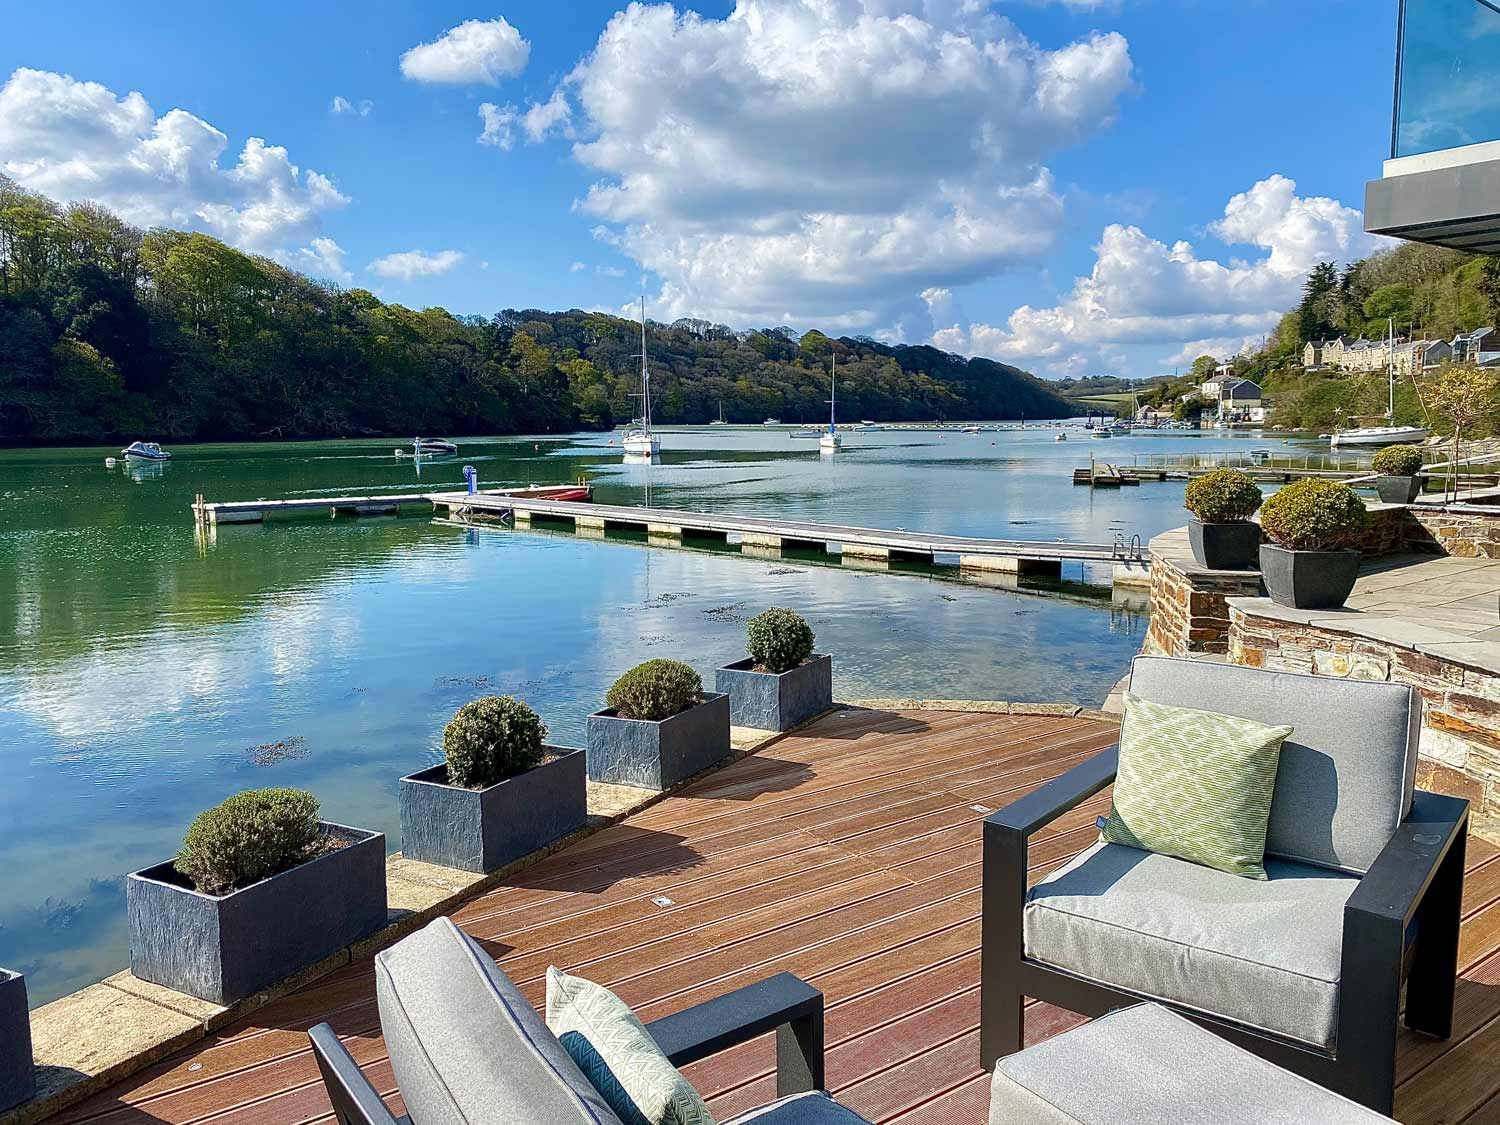 Curlew Seaside Deck and View of Malpas River